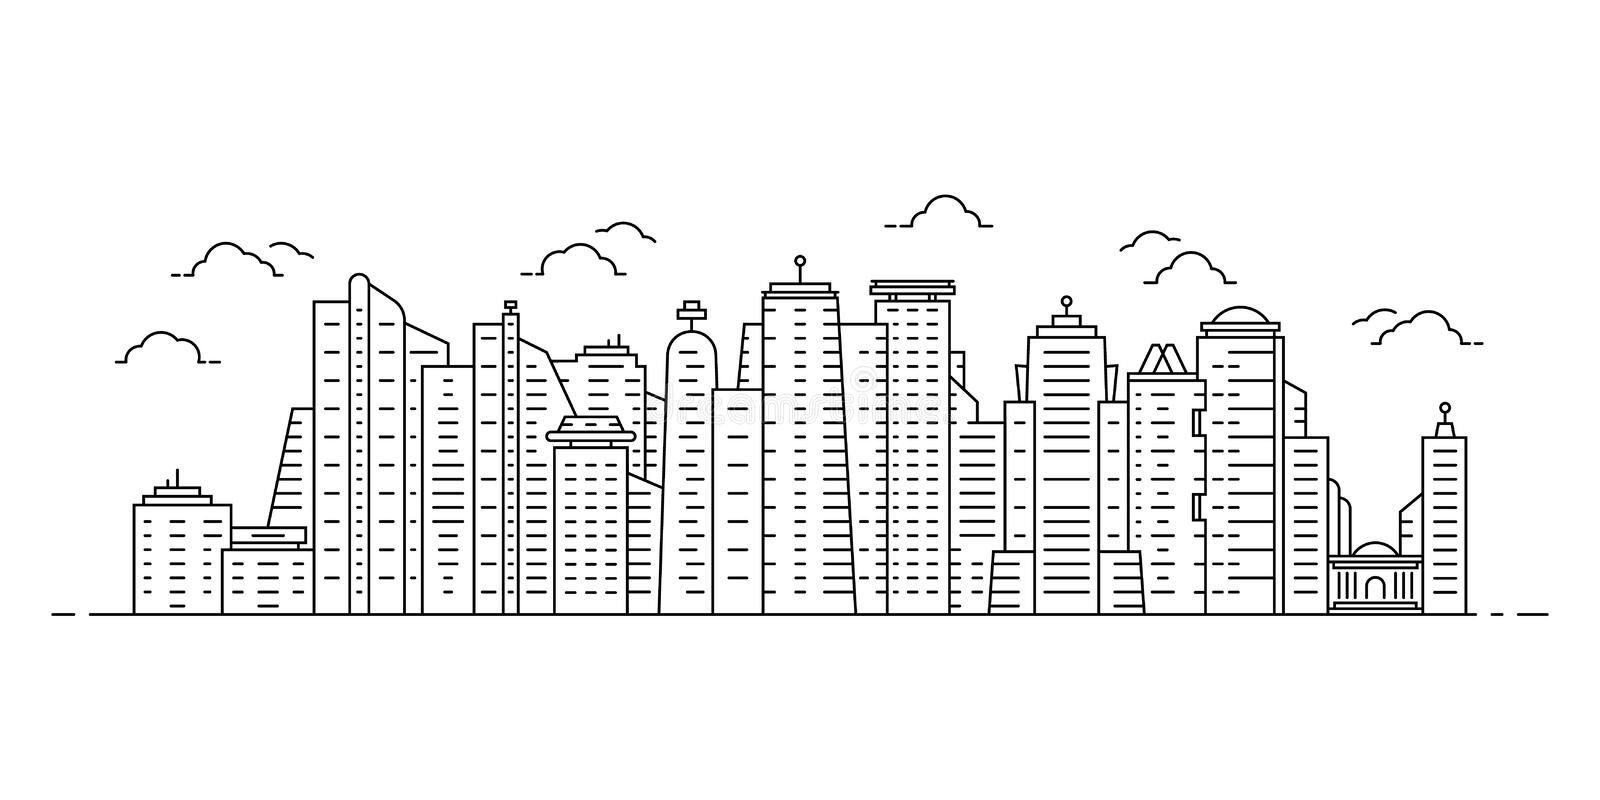 Black thin line cityscape with skyscrapers vector illustration